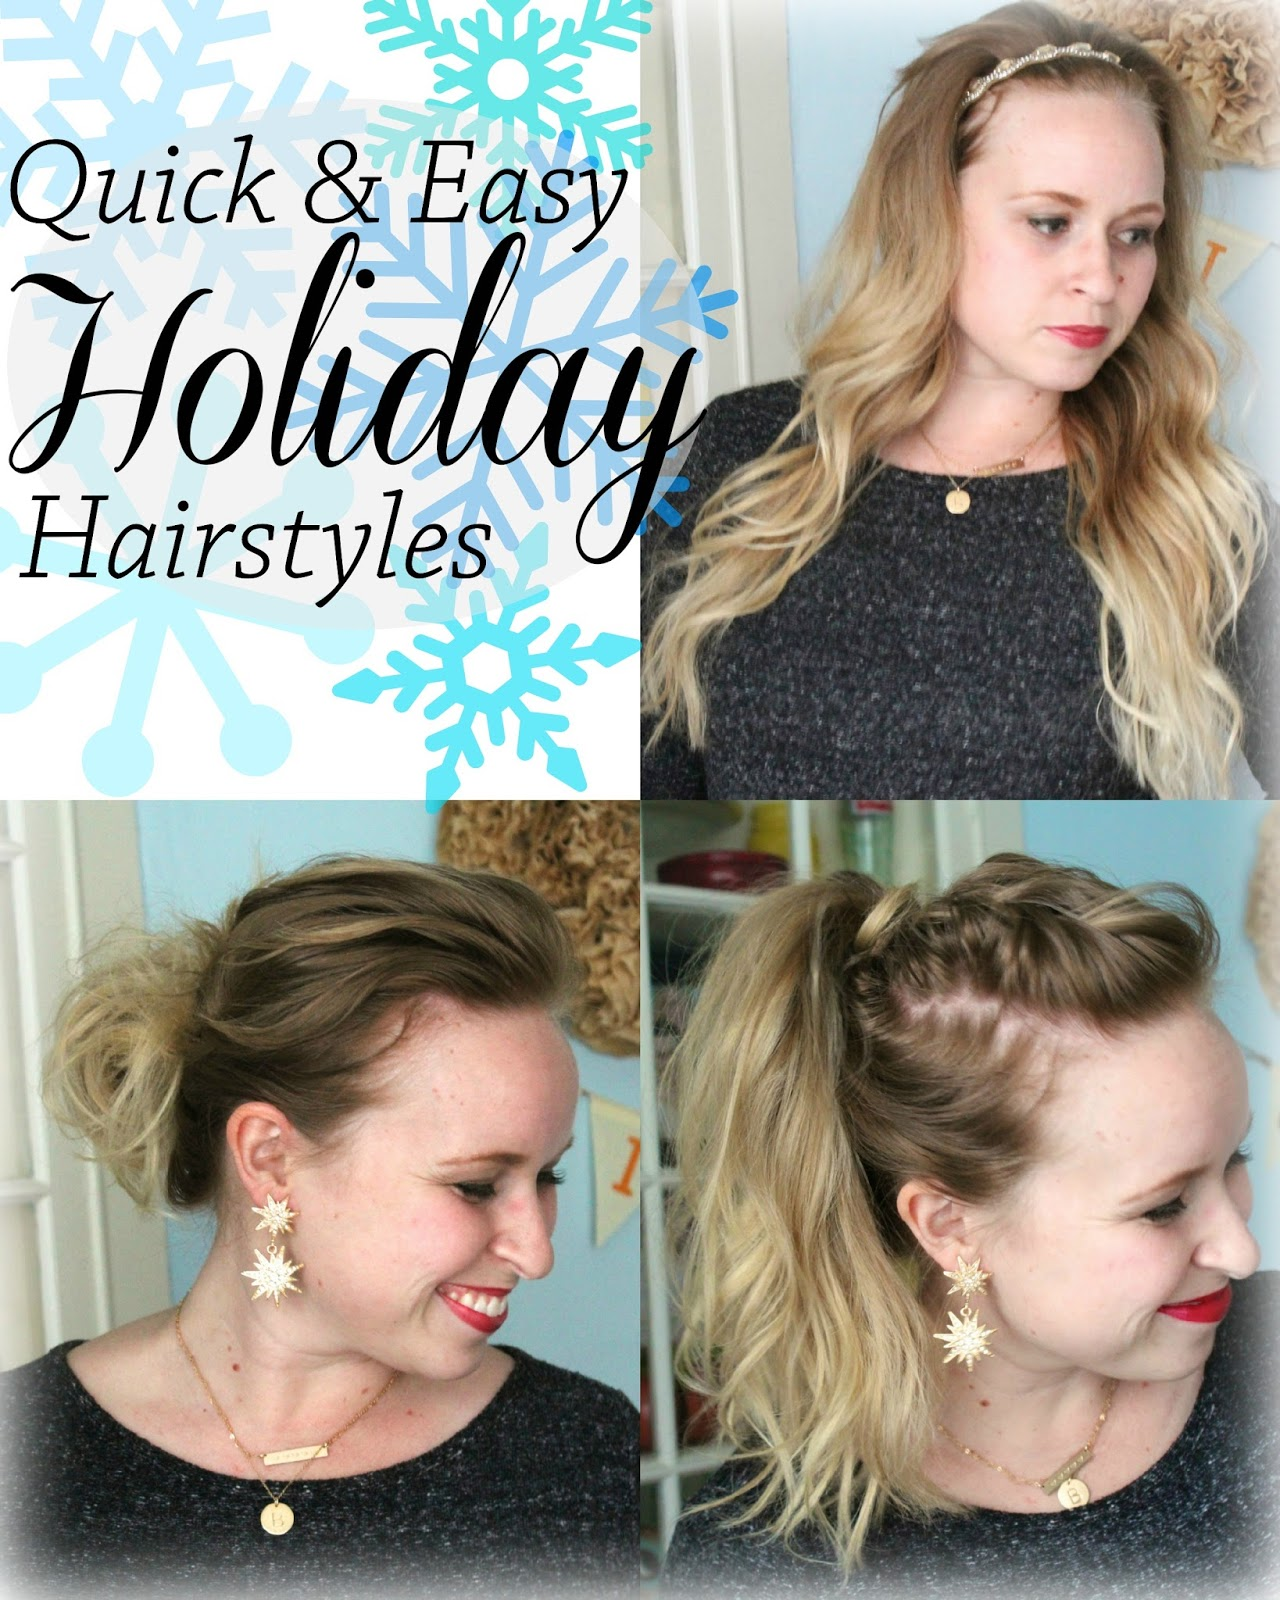 Fashion style Hairstyles Easy for the holidays pictures for lady